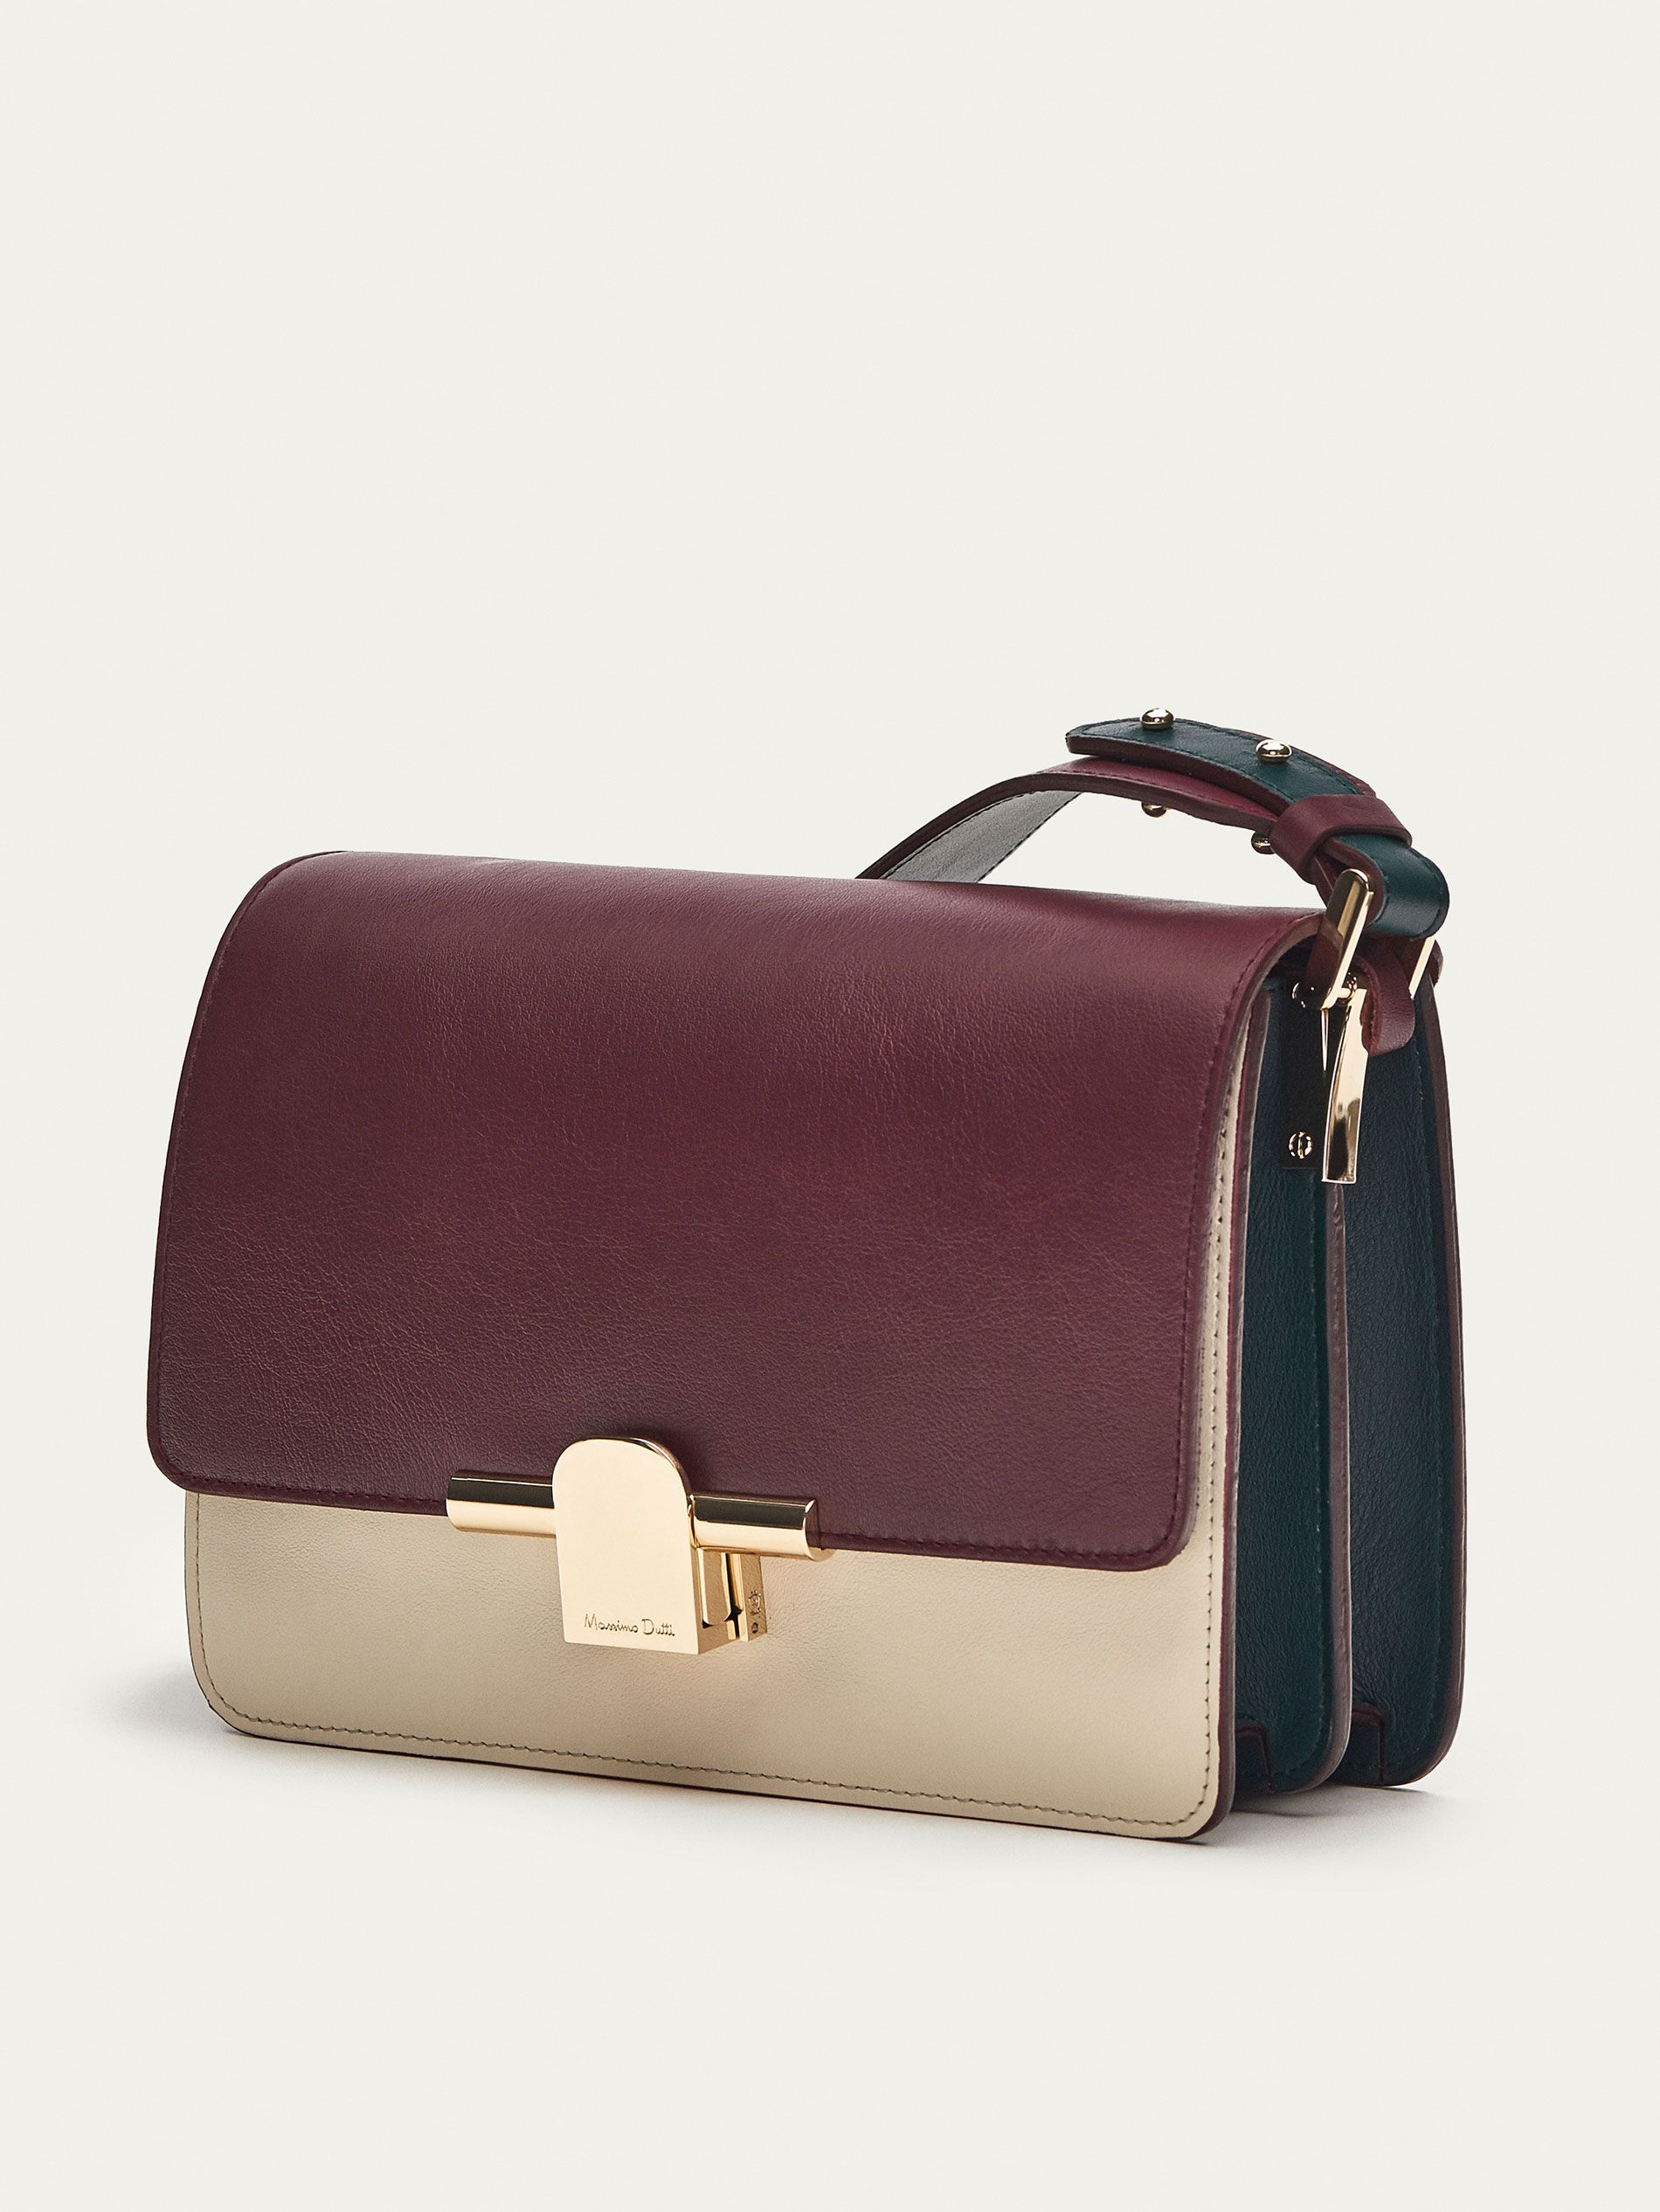 8d27b93a0b LEATHER TRICOLOURED CROSSBODY BAG WITH METAL DETAIL - Women - Massimo Dutti